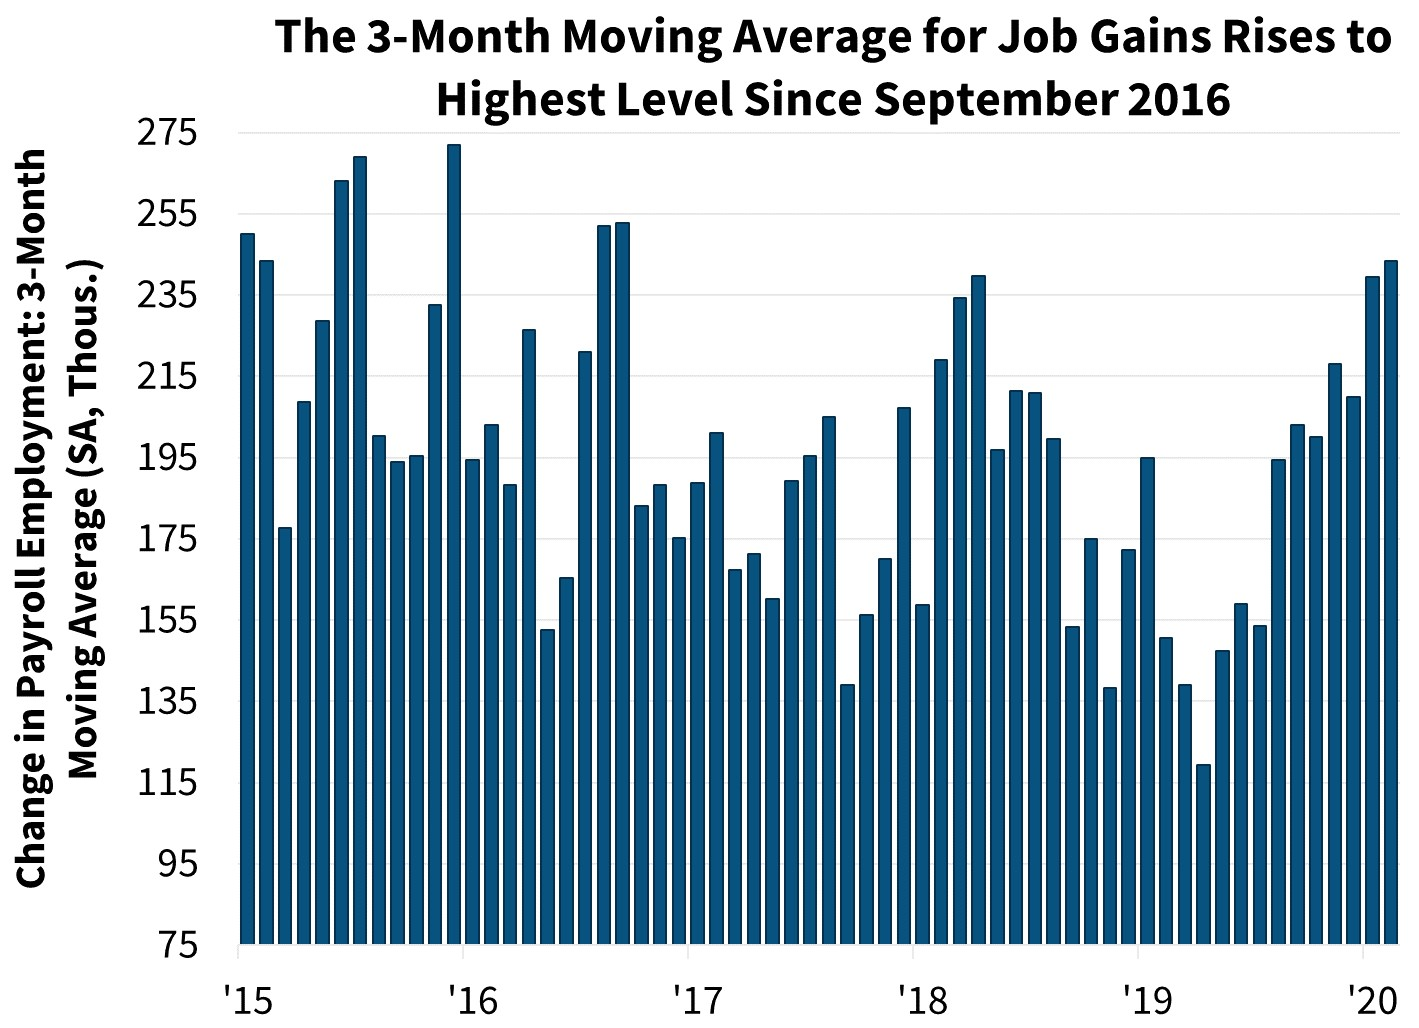 The 3-Month Average for Job Gains Rises to Highest Level Since September 2016